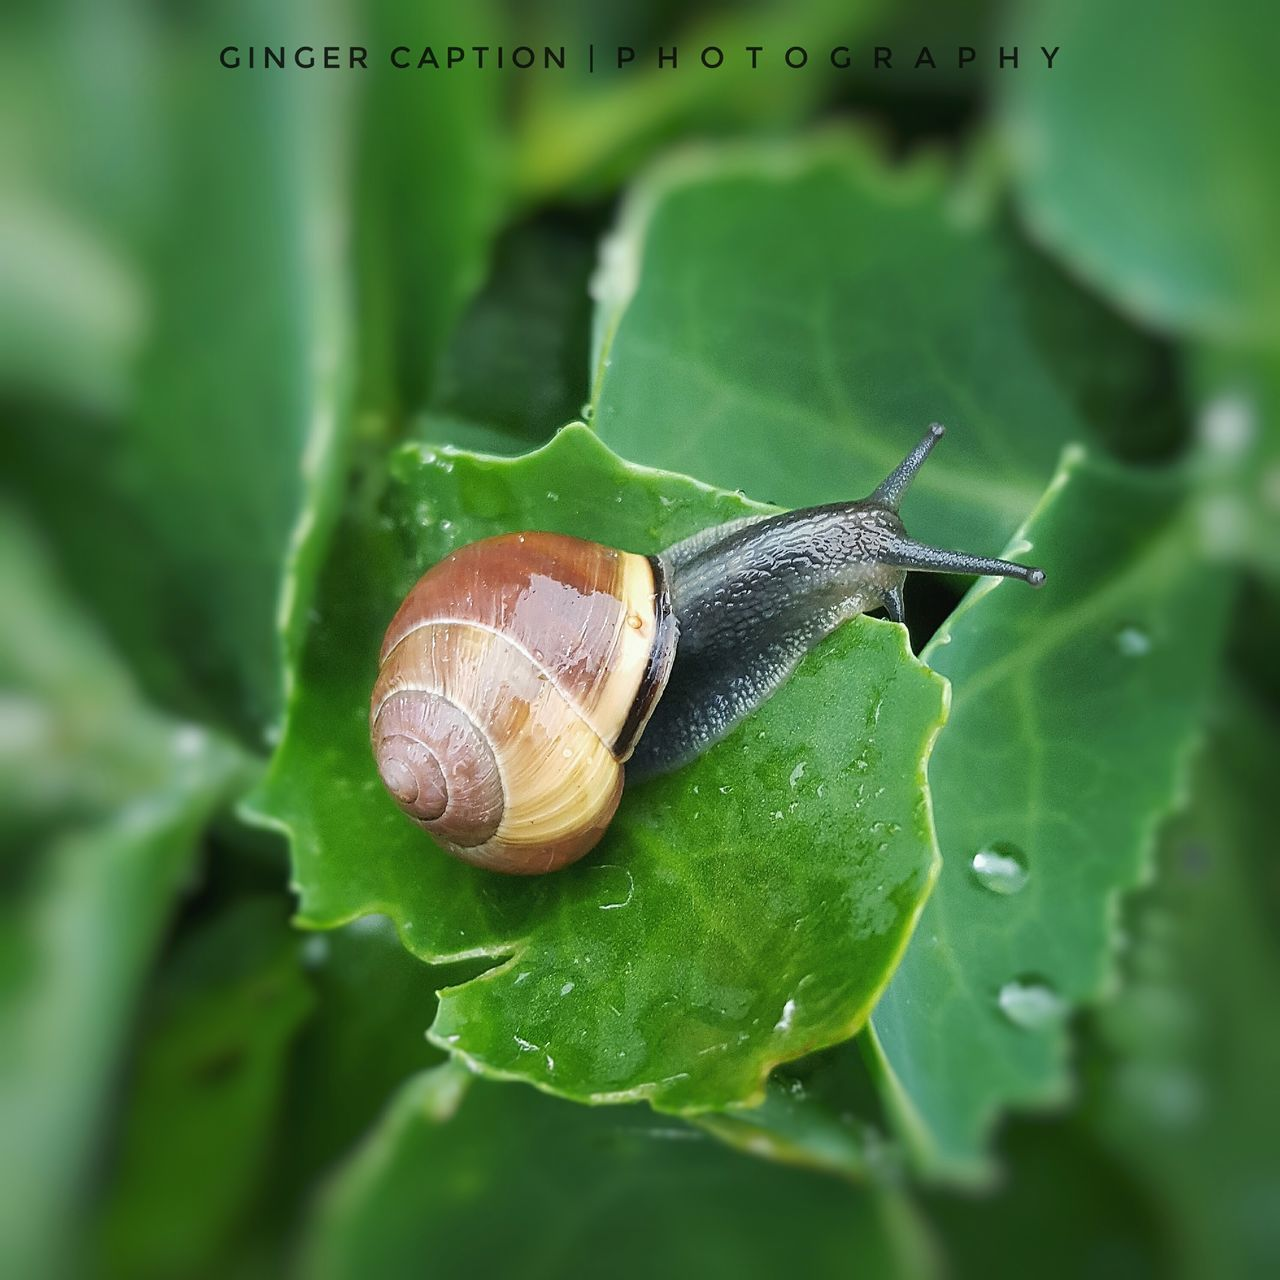 Home - Insect Leaf Green Color Animal Themes Animal Wildlife Nature Outdoors Close Up Photography Macrophotography Macro_collection Macro Beauty Macro Photography MyPhotography Nature Photography Beautiful Nature Nature_collection Macro_captures Beauty In Nature Macroporn EyeEm Best Shots Green Waterdroplets Macro Close-up Snail🐌